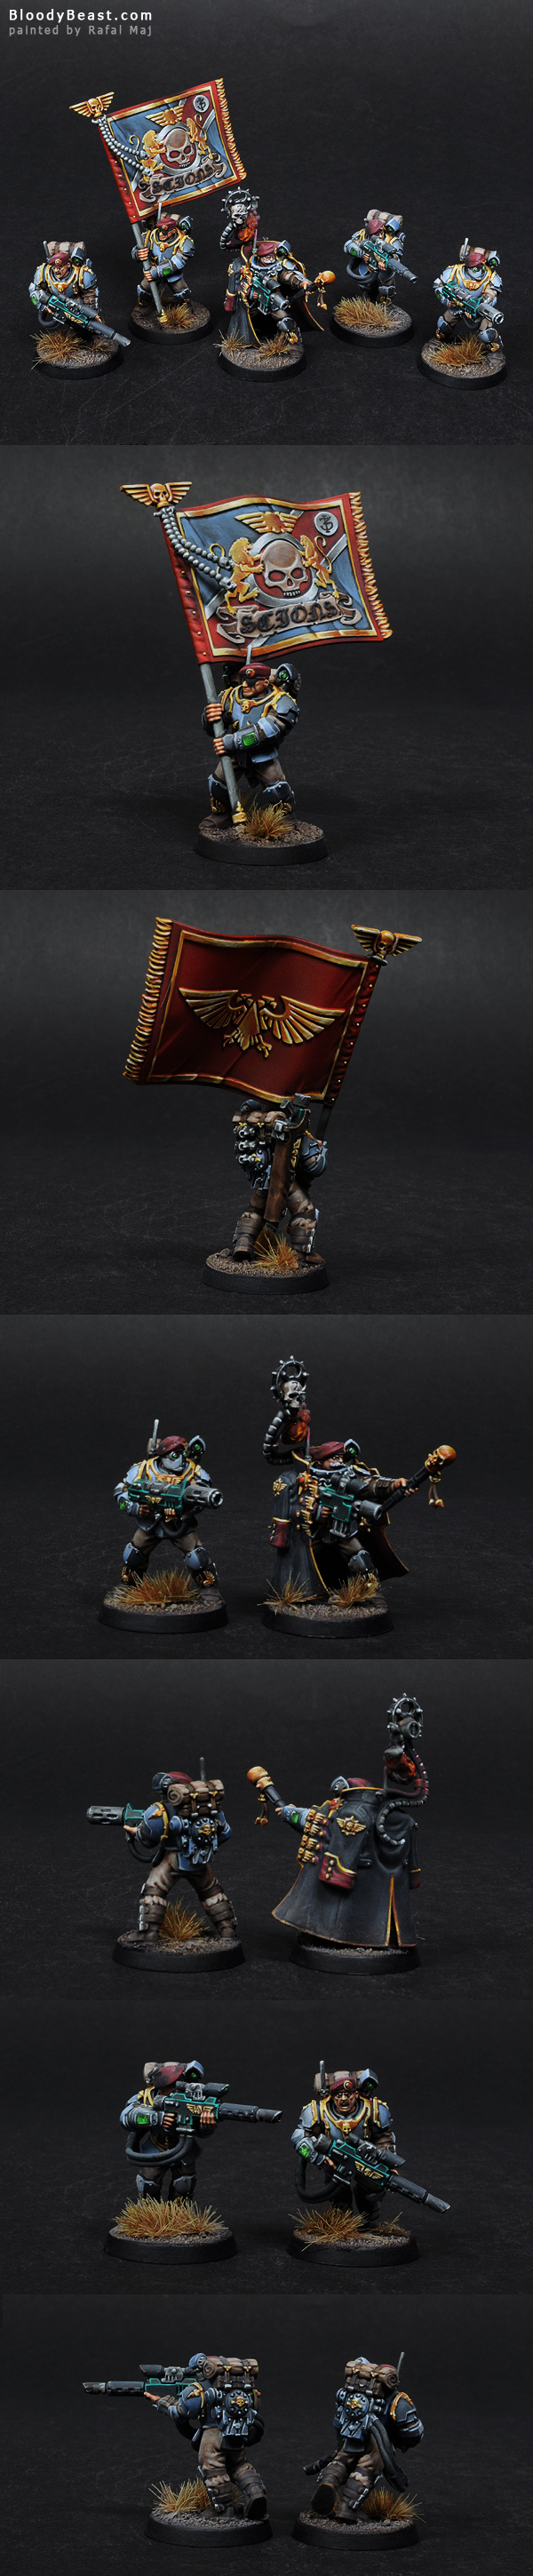 Militarum Tempestus Scions Command Squad painted by Rafal Maj (BloodyBeast.com)